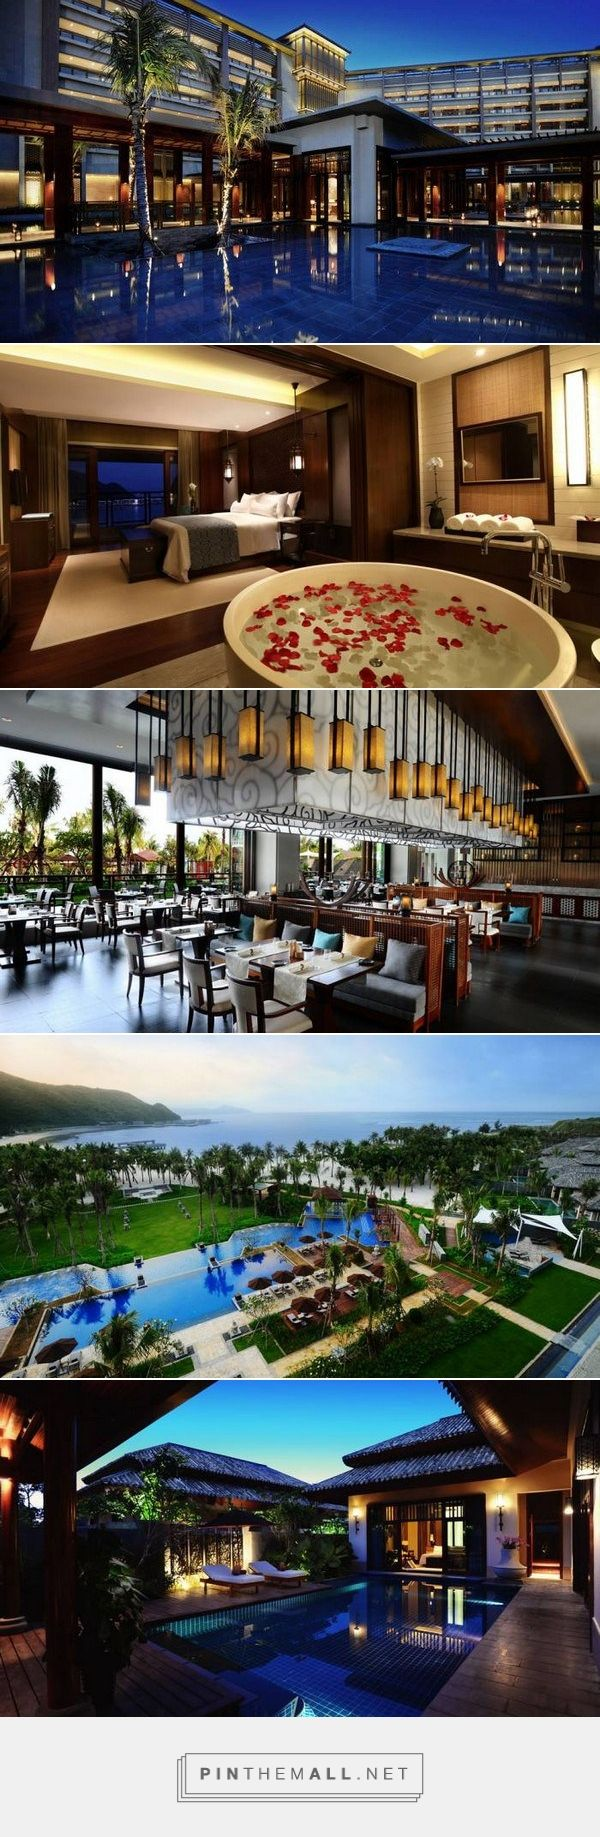 Anantara Sanya Resort and Spa, Hainan Island, China  #SanyaHeartstoHearts campaign started. Learn More at @visitsanya